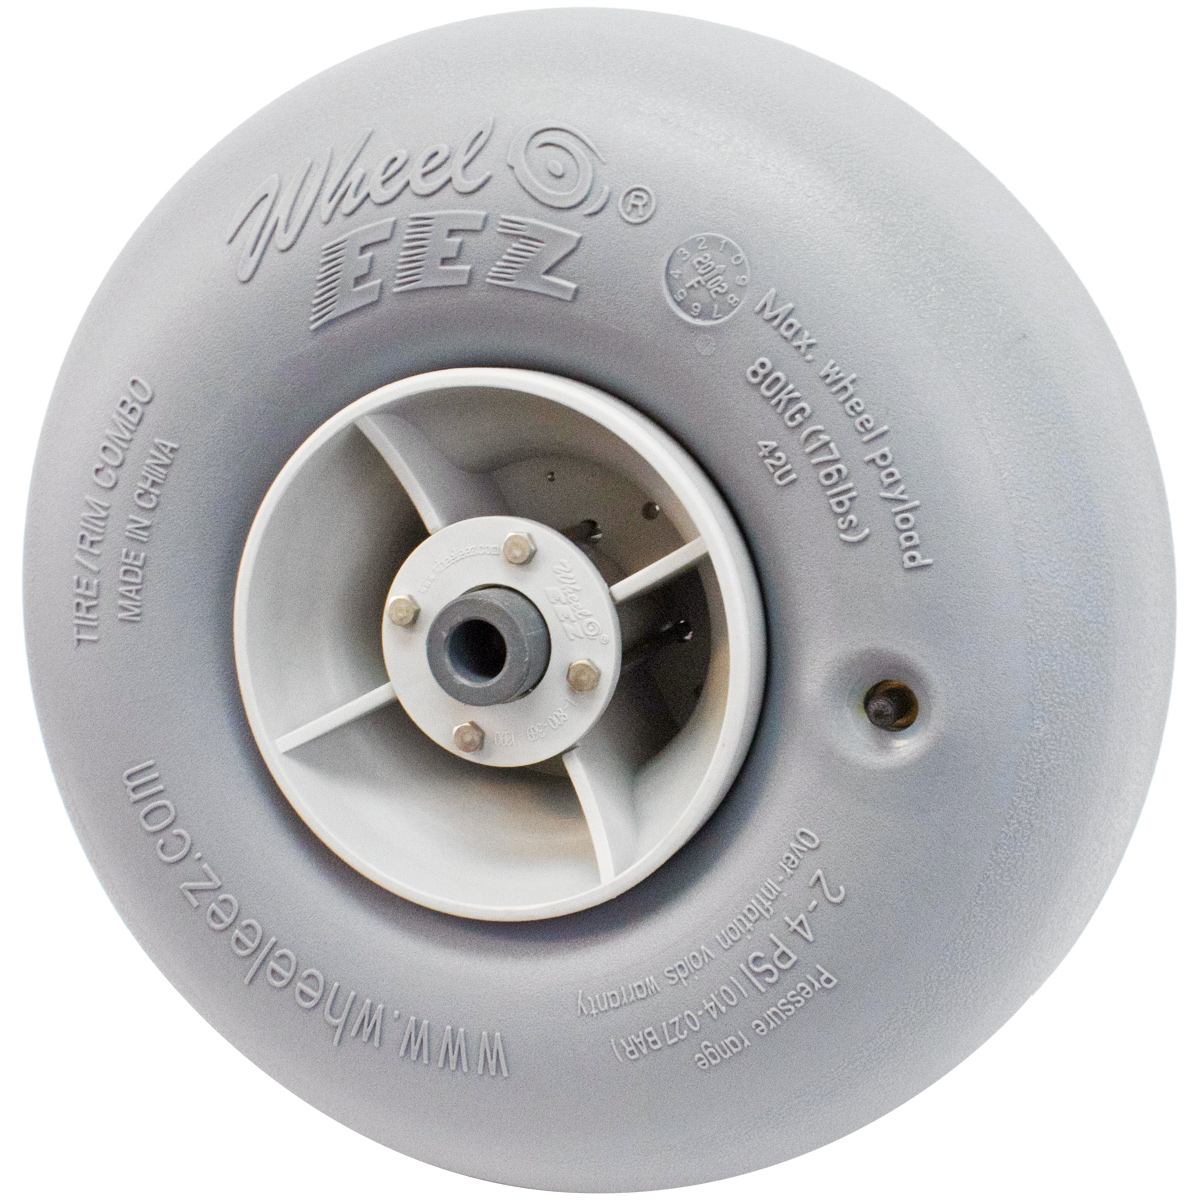 "WheelEEZ 42U Wheel with 3/4"" Bearing"